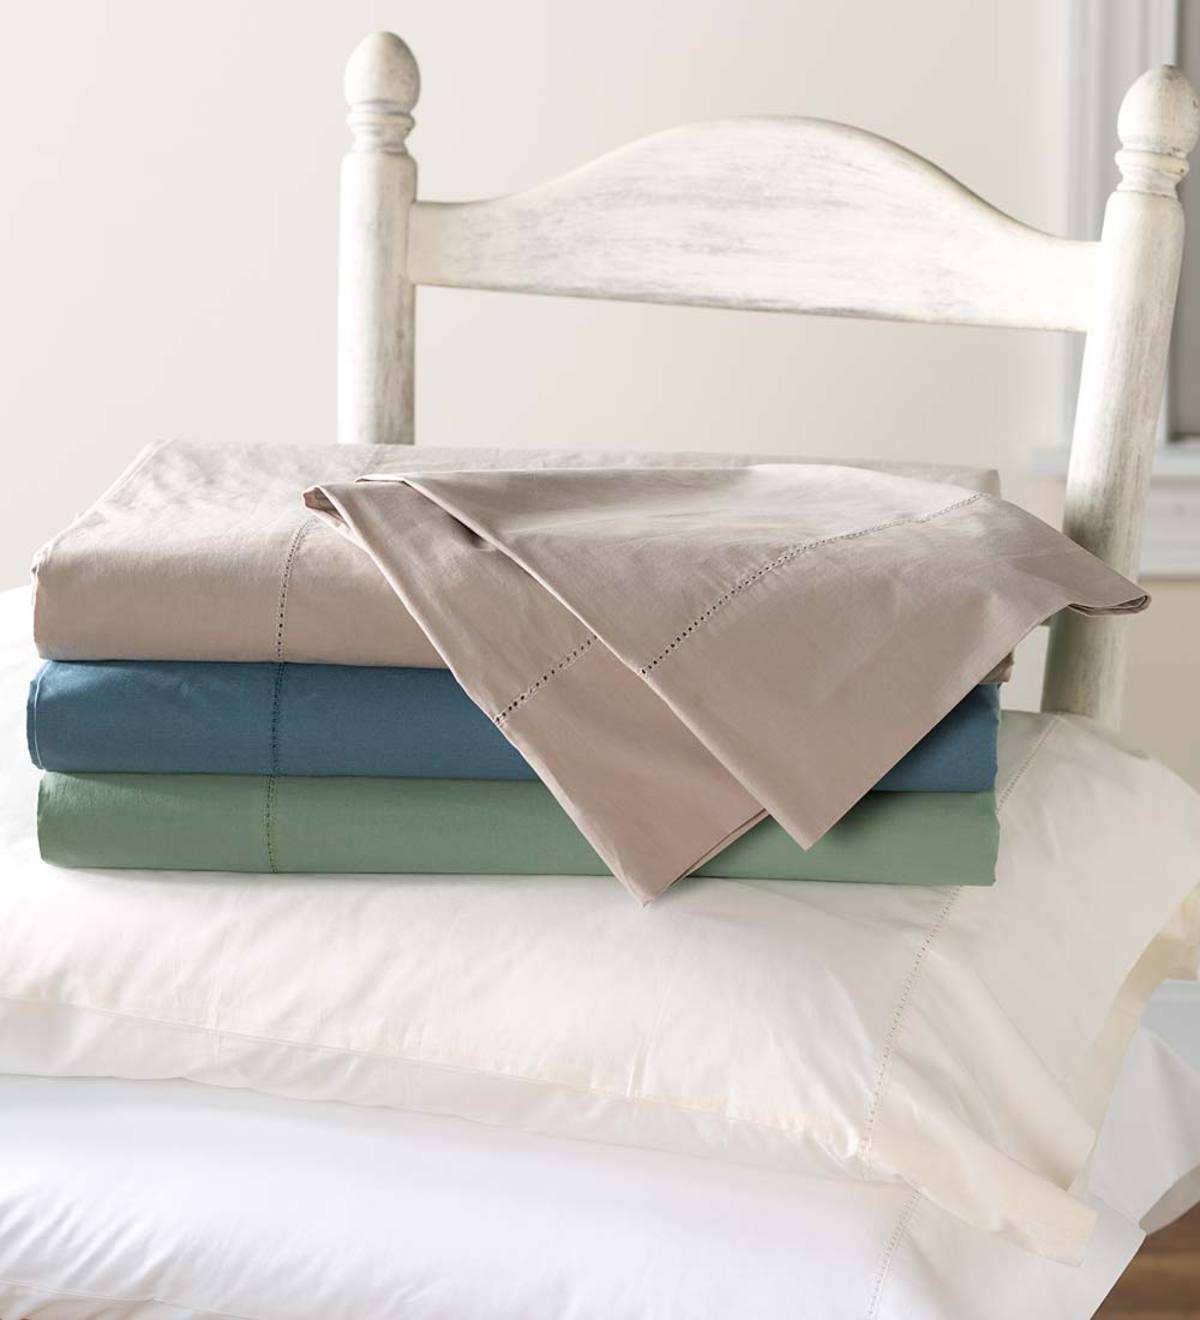 King Signature Cotton Percale Sheet Set - BUT